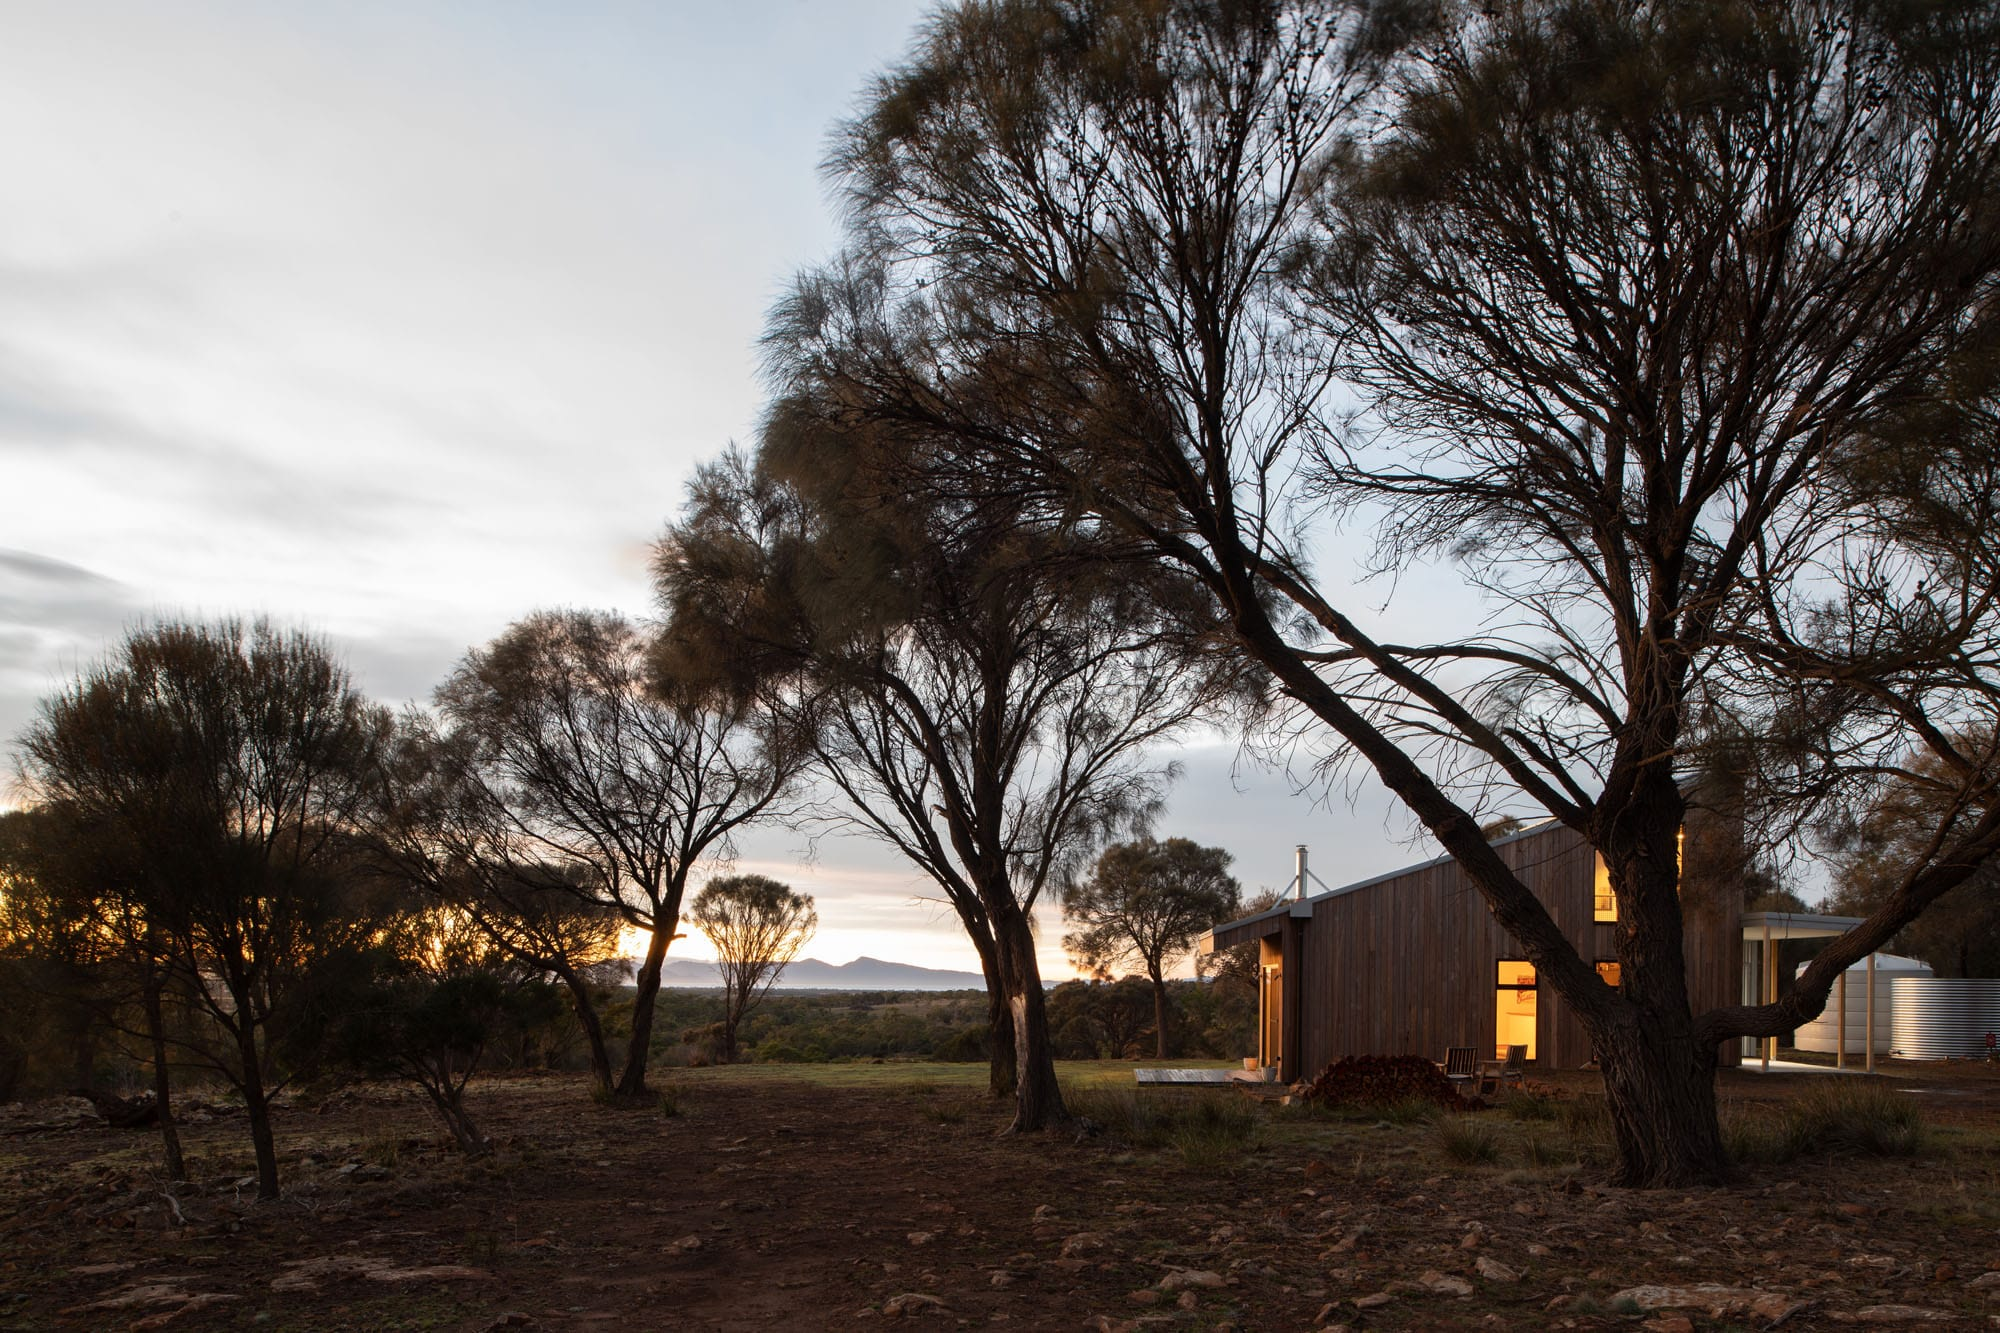 Distant view of timber off-grid sustainable home at dusk